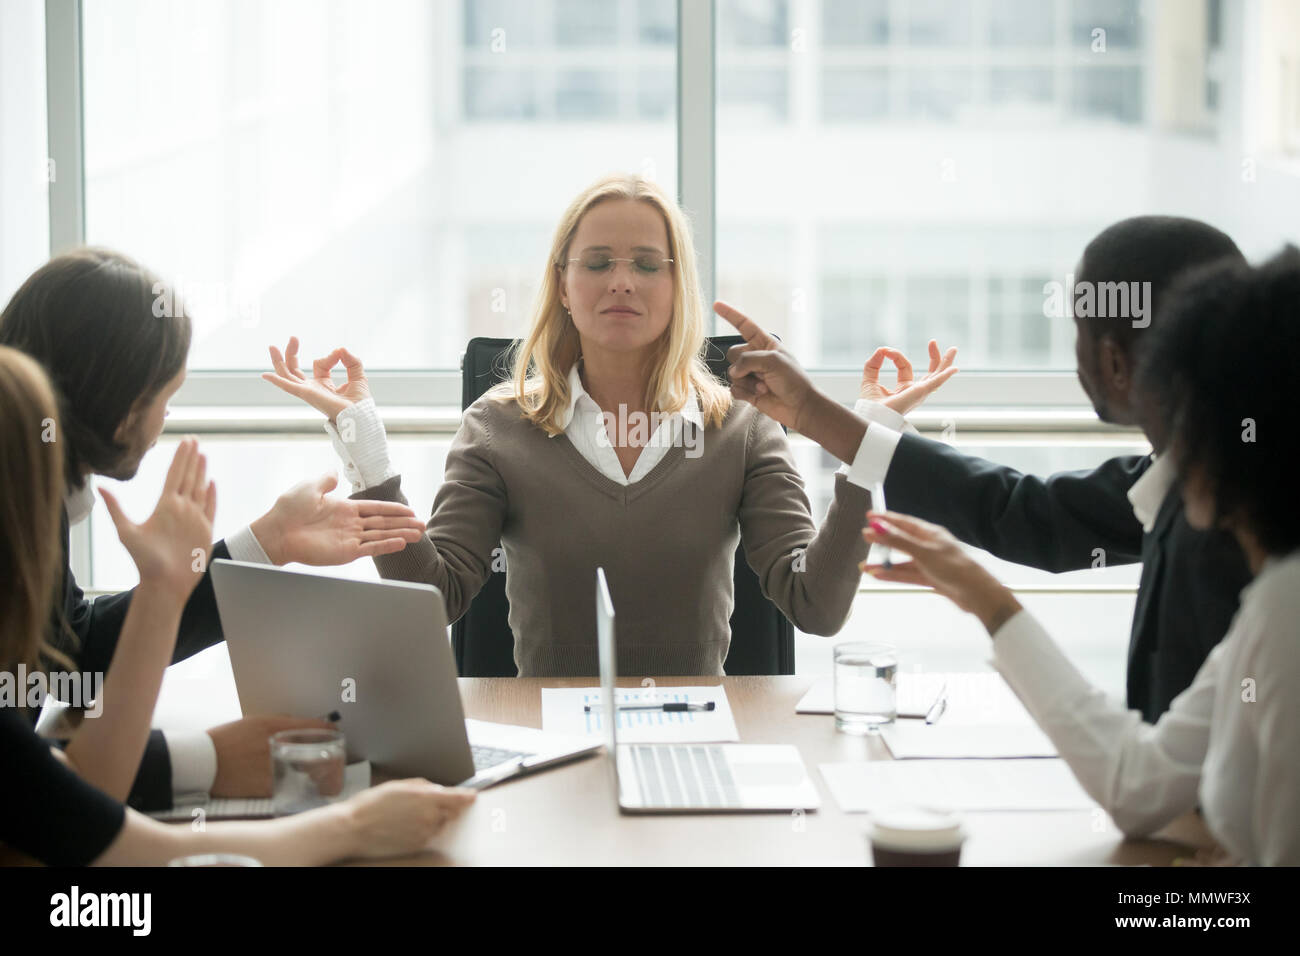 Mindful female boss calming down meditating at stressful office  - Stock Image